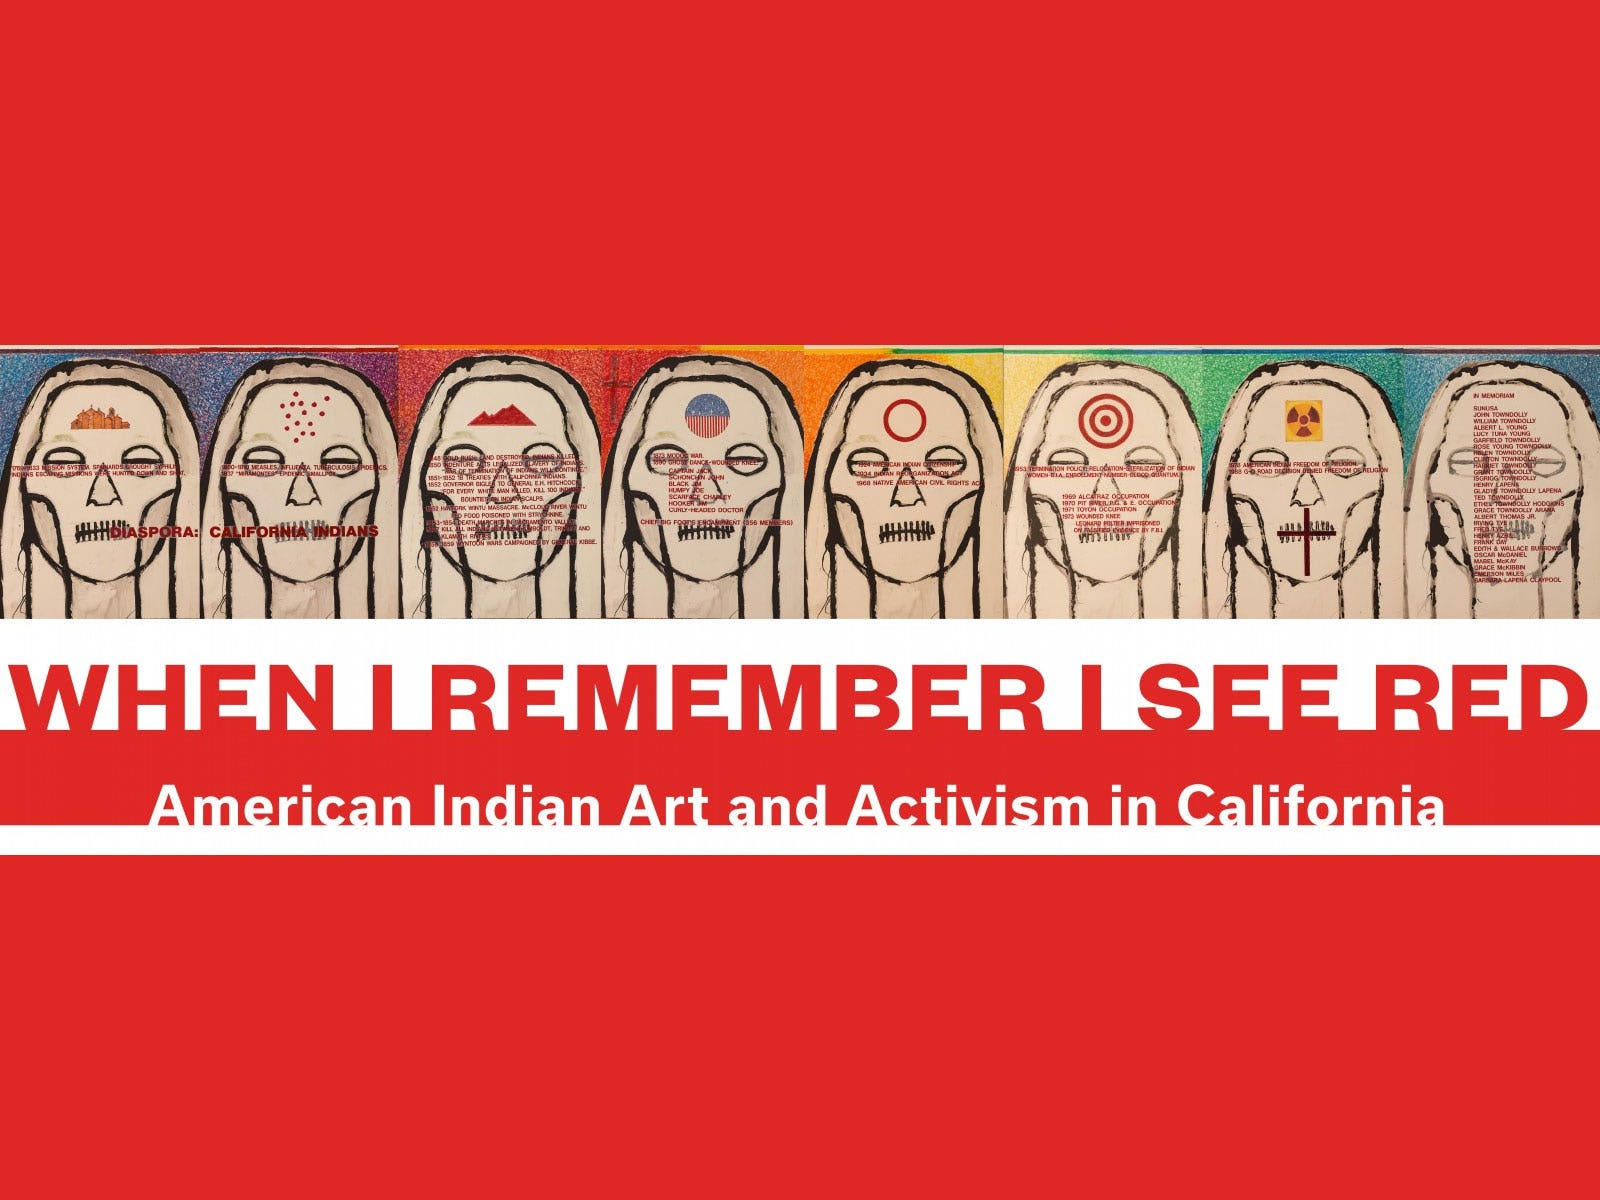 Main image for event titled When I Remember I See Red: American Indian Art and Activism in California